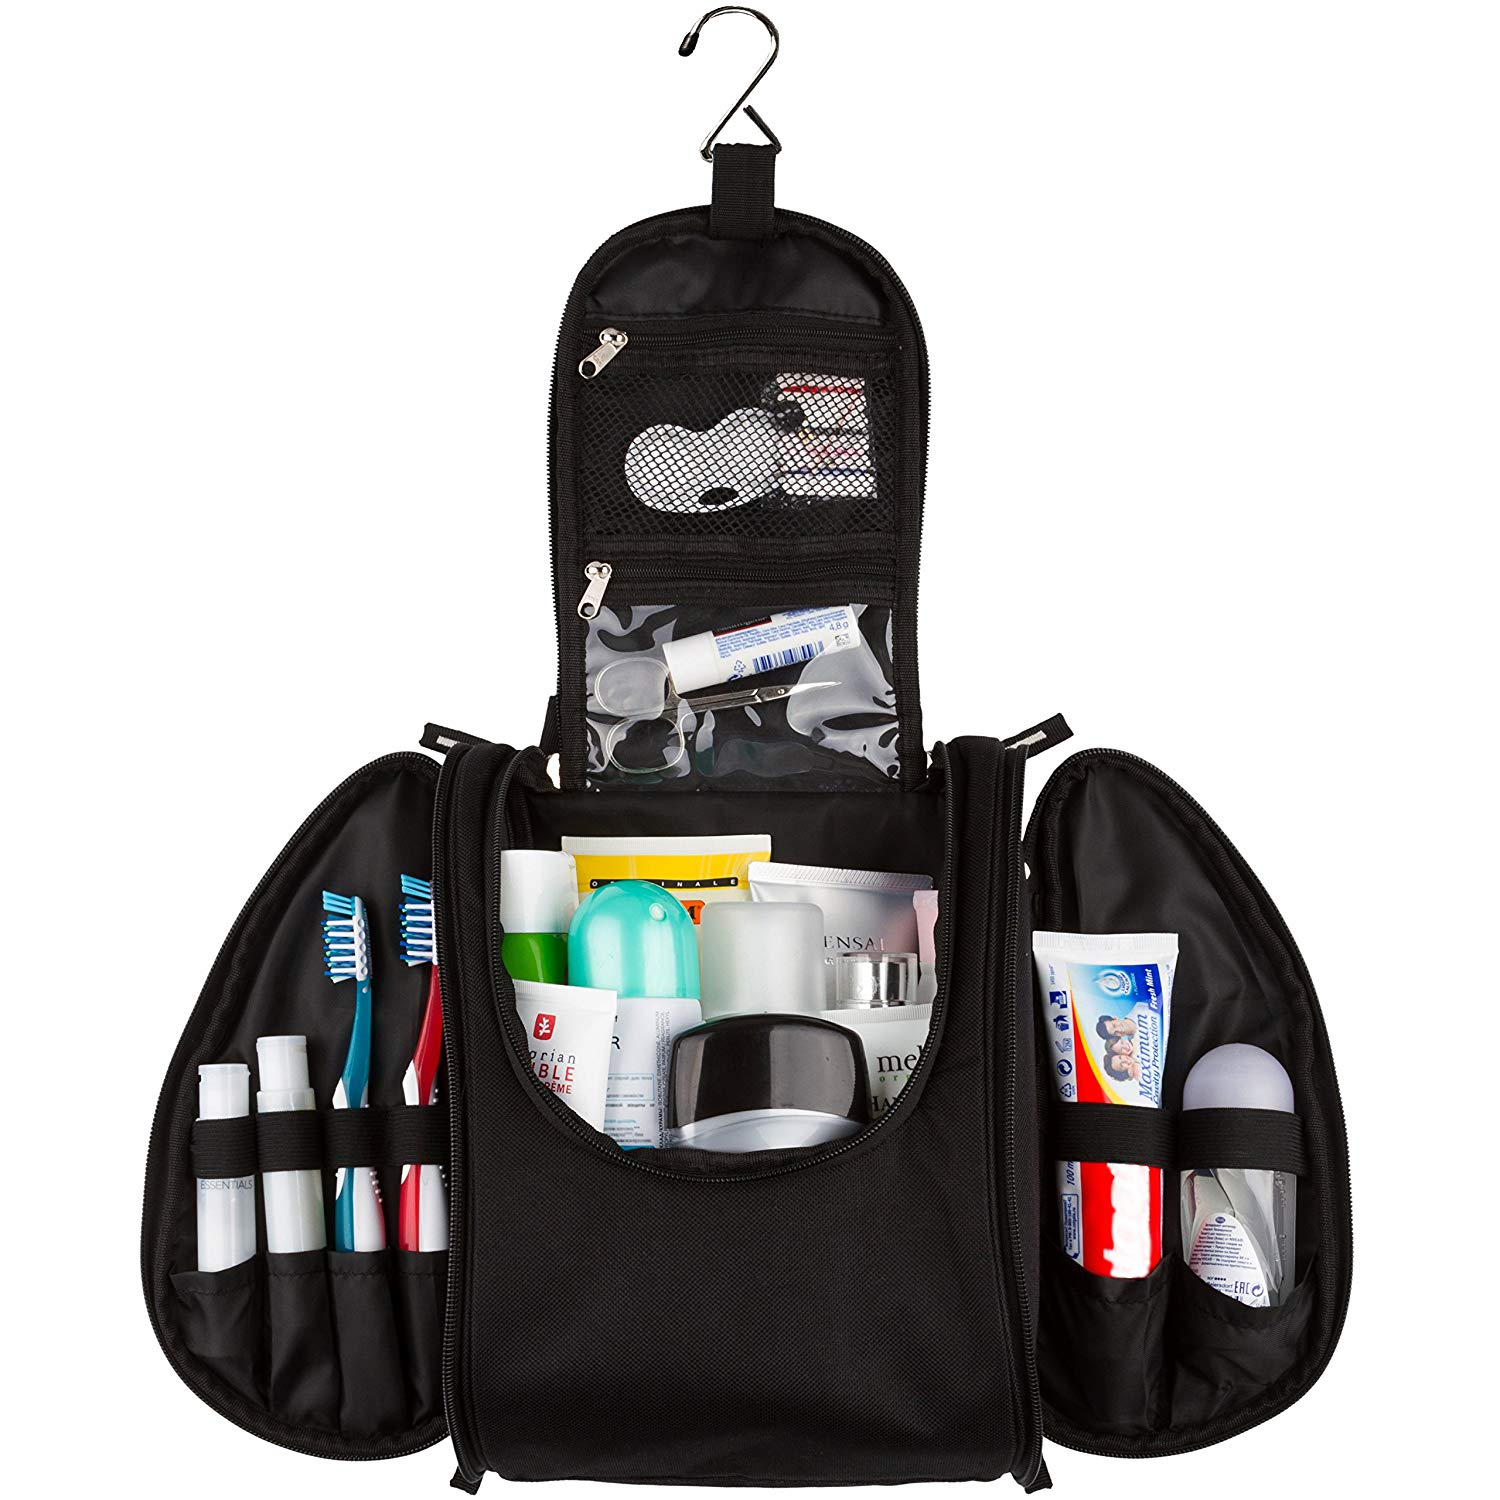 42 Travel Hanging Toiletry Bag